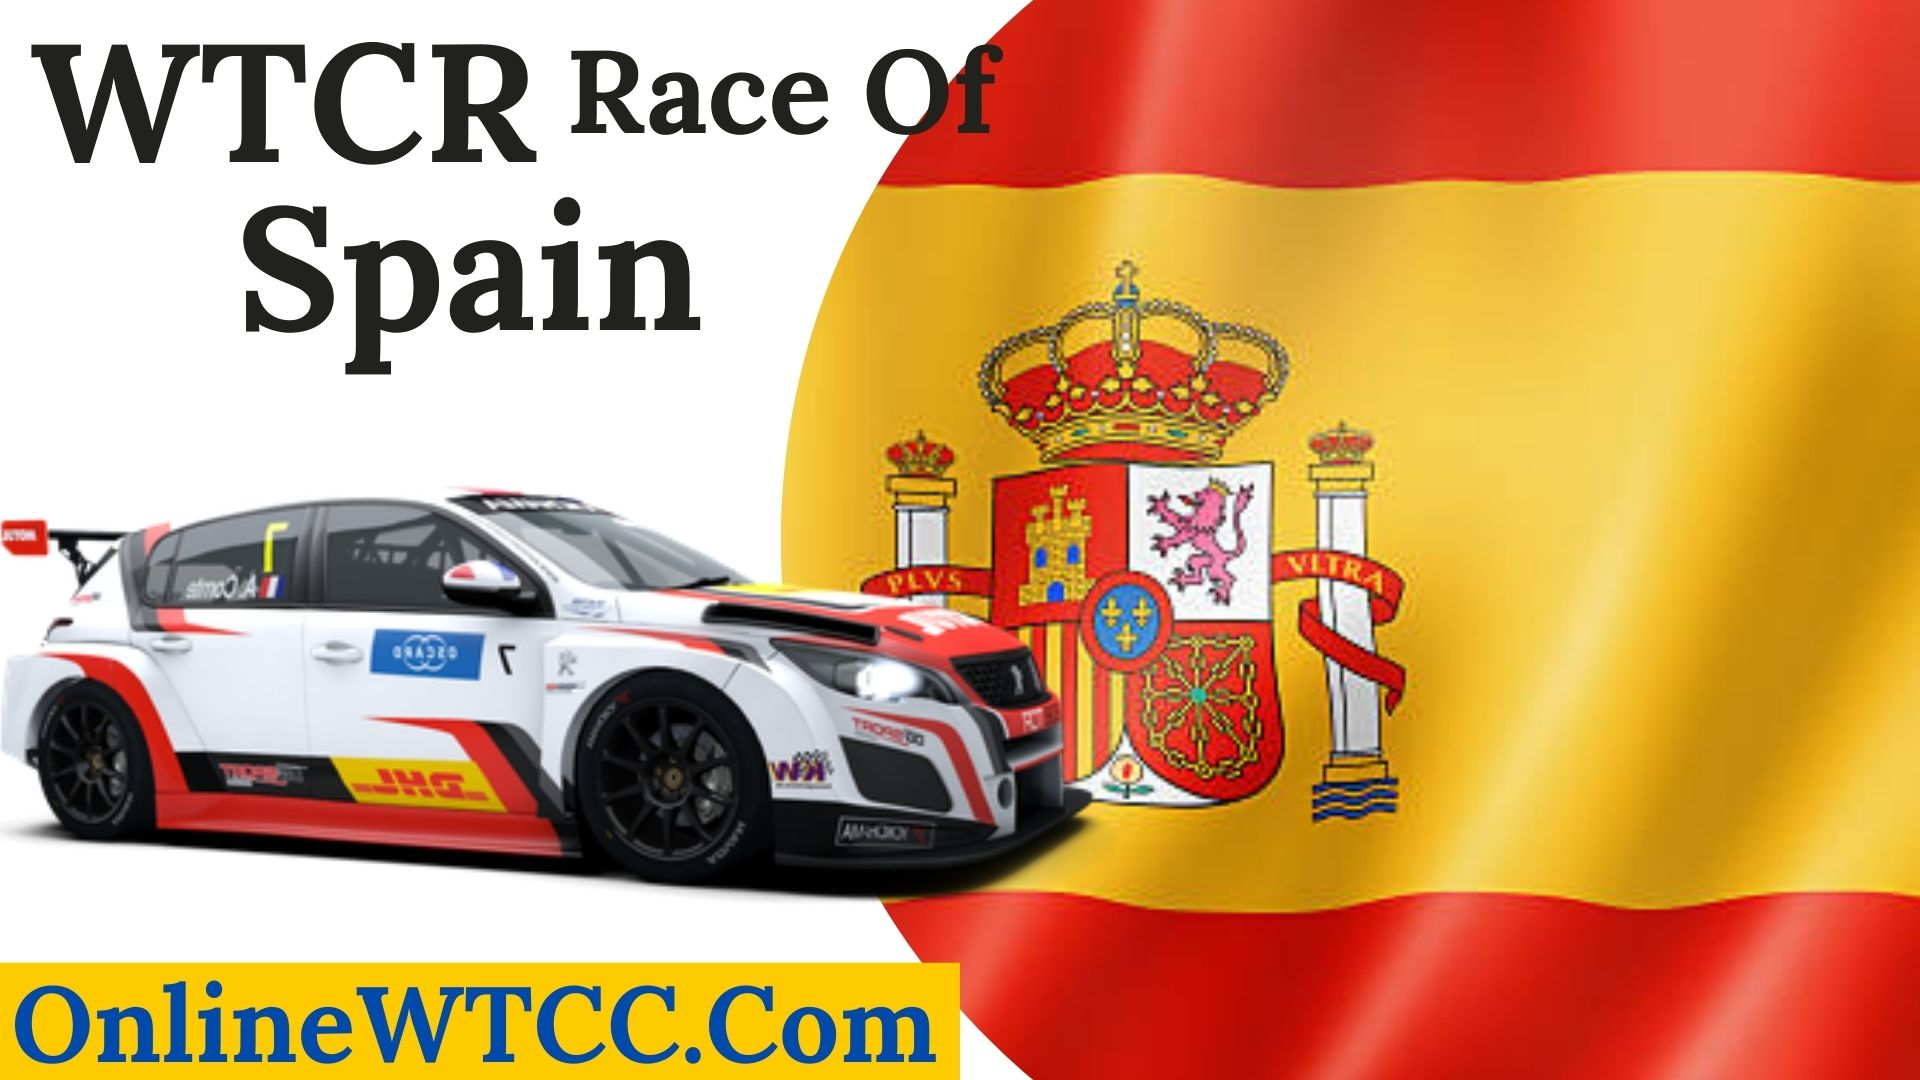 WTCR Race of Spain Live Stream